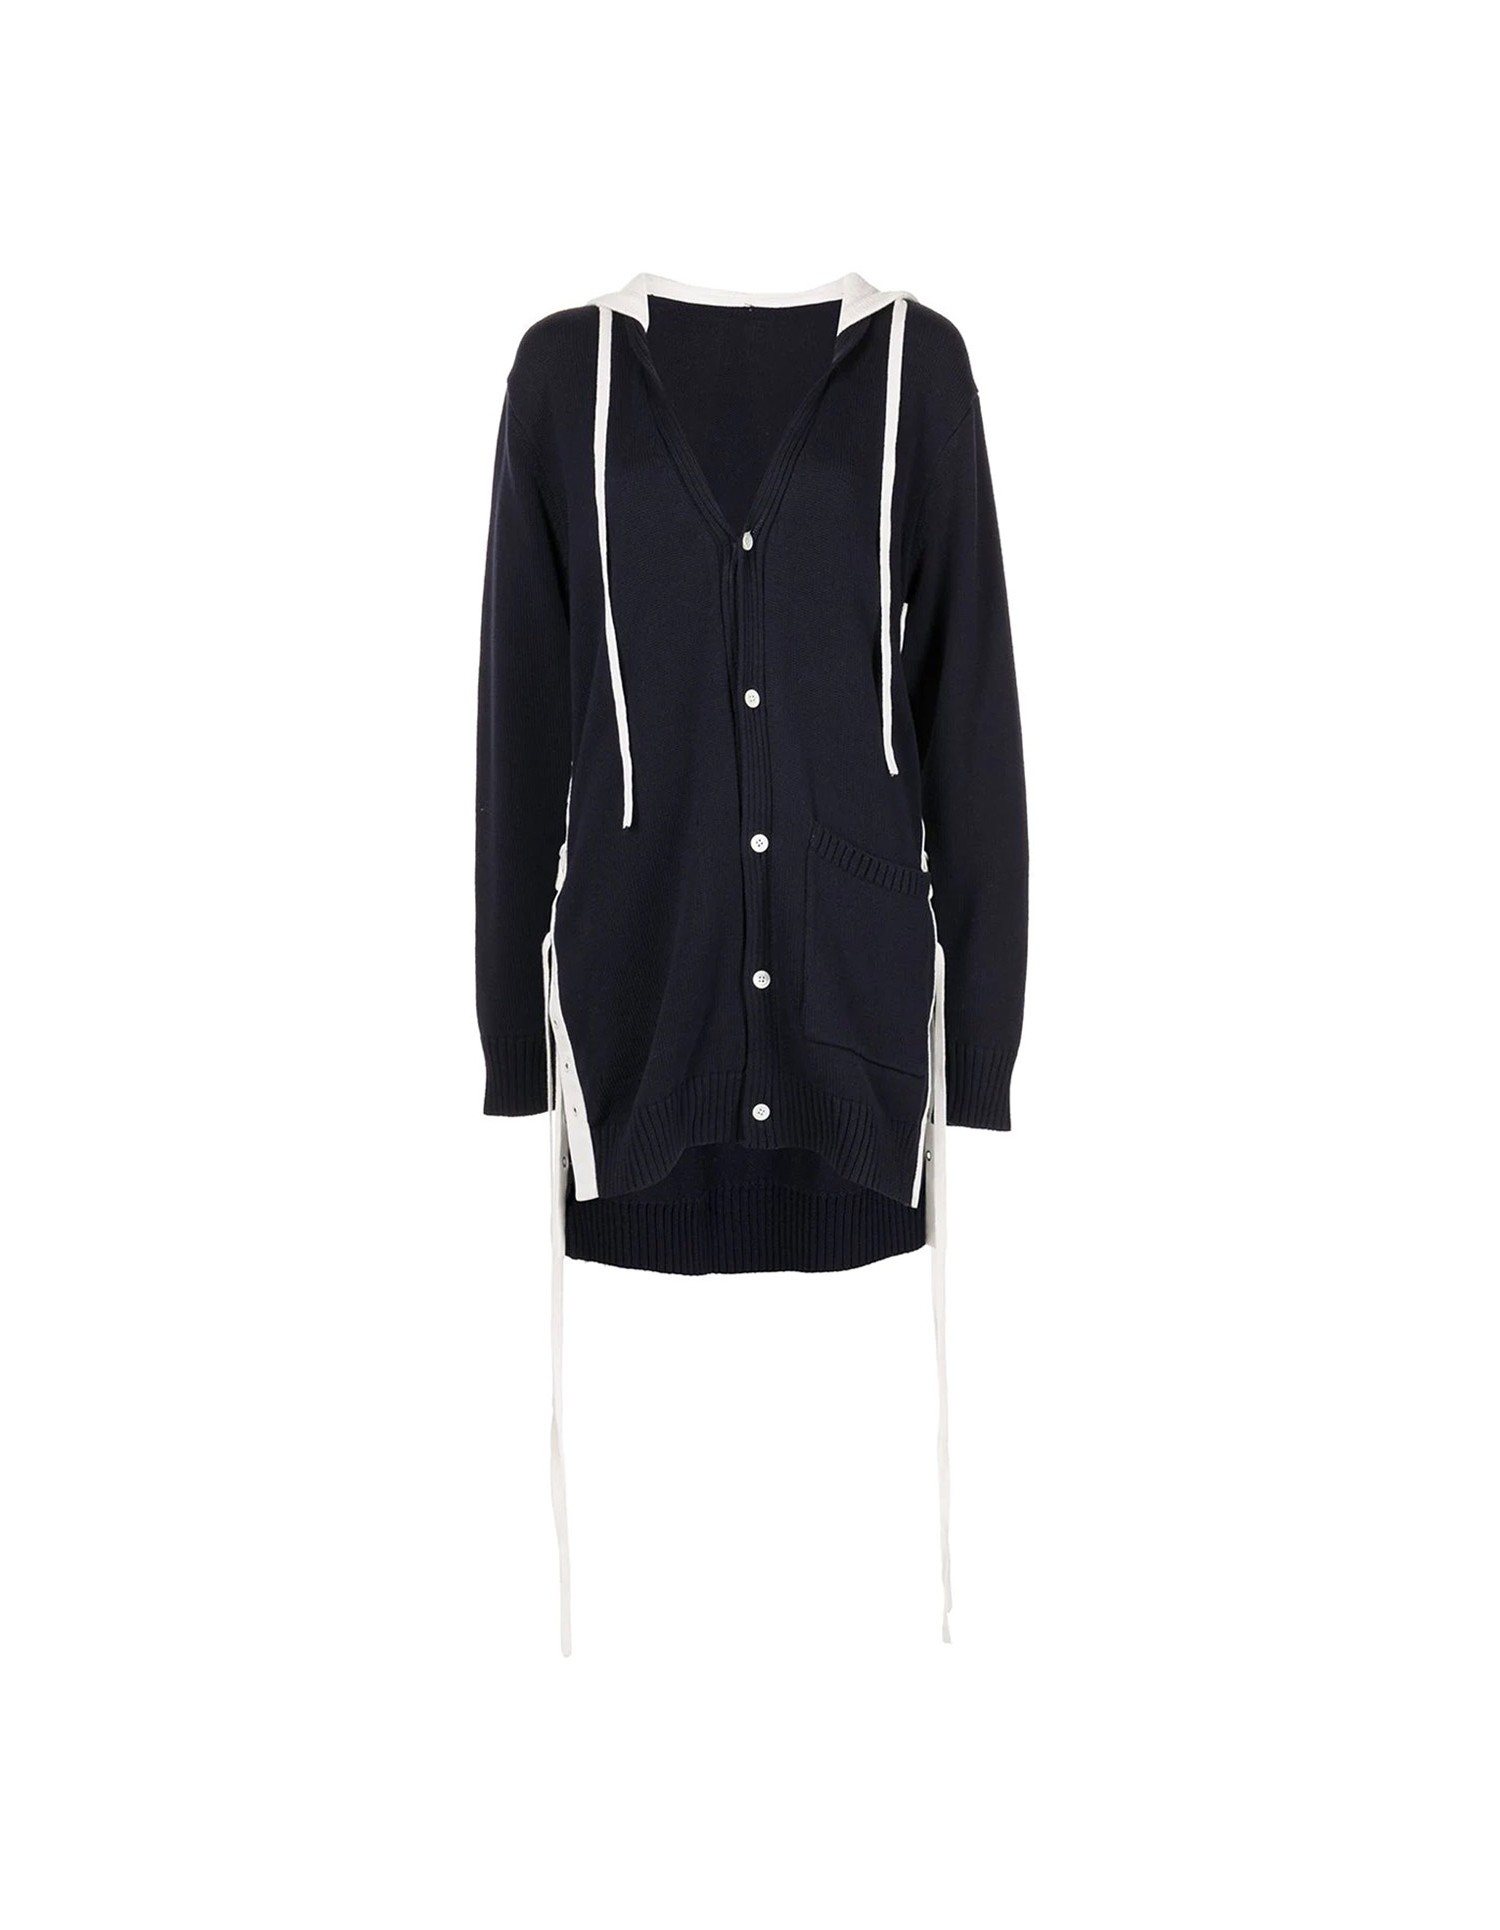 MONSE Hooded Lace Up Cardigan on Model Side View